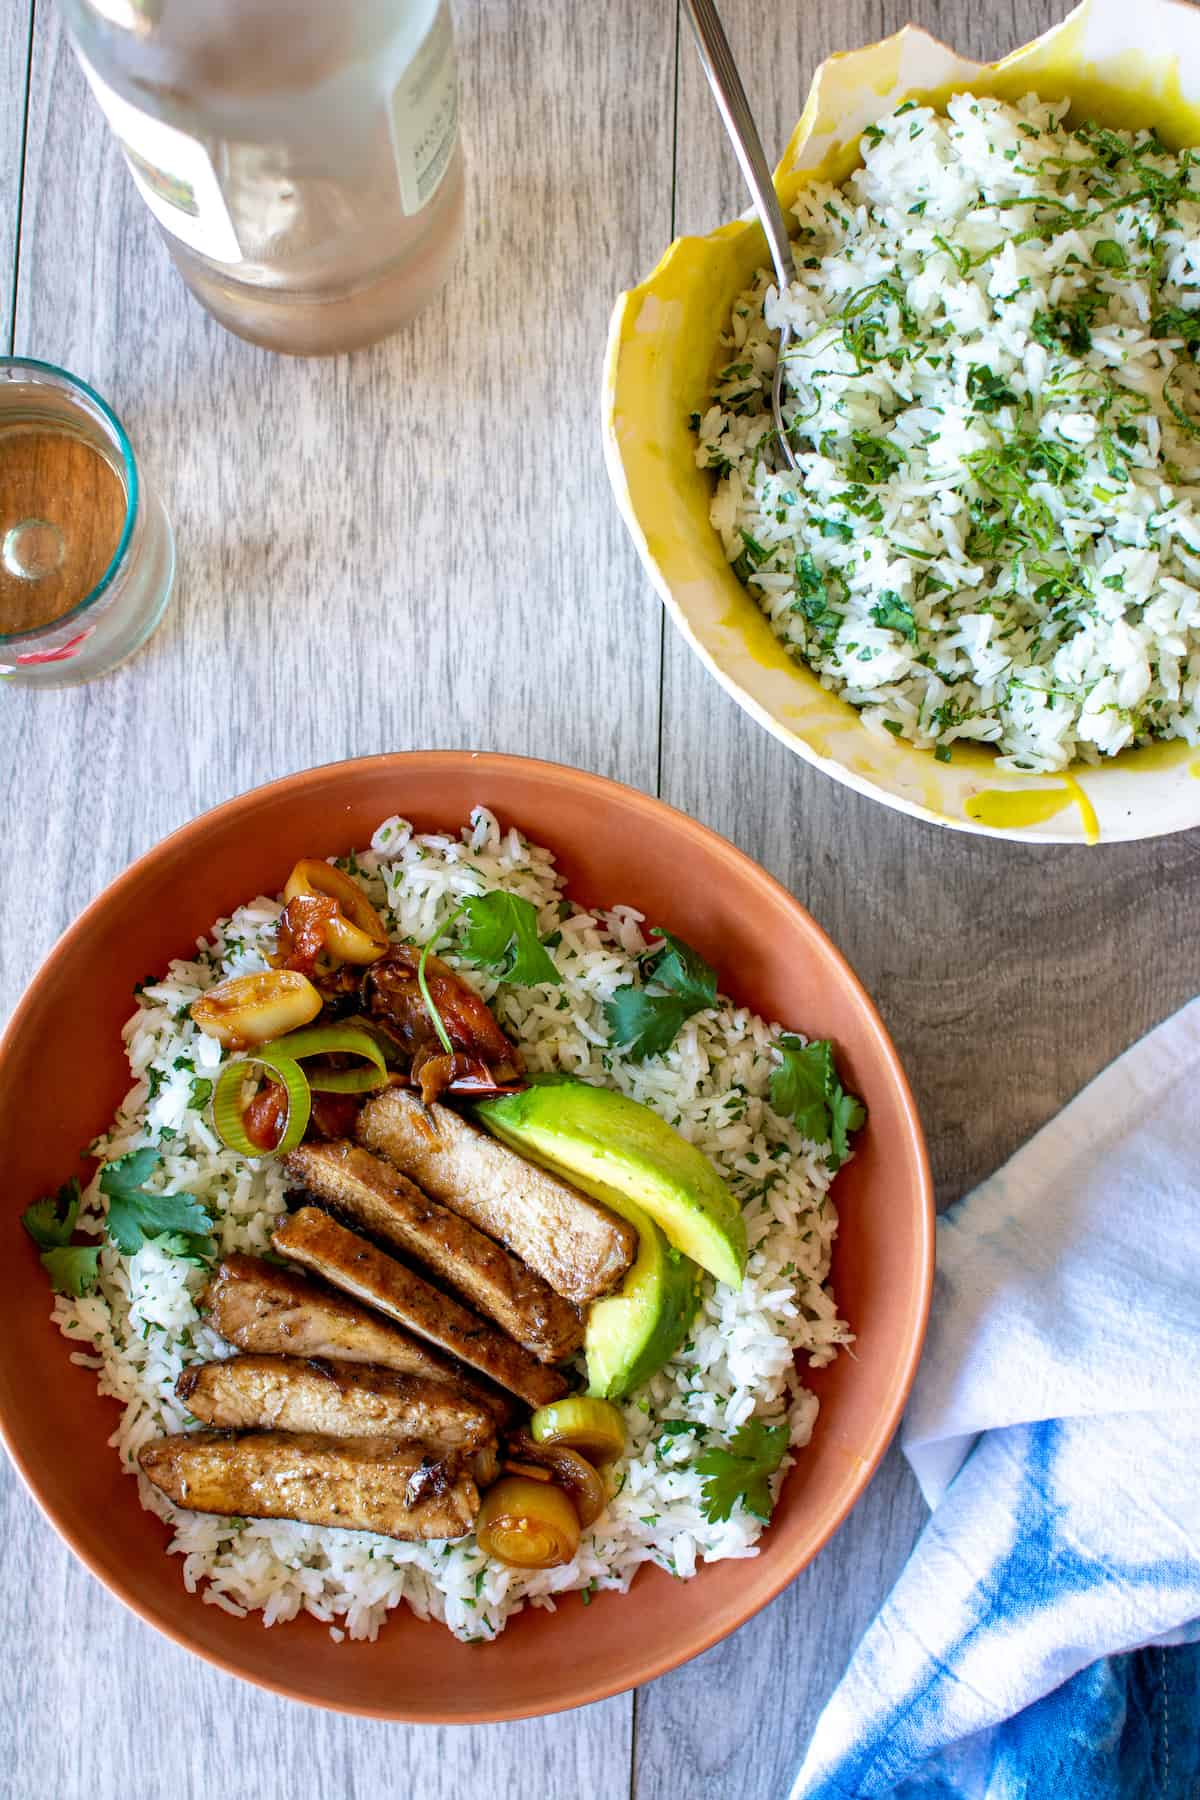 A brown bowl with cilantro lime rice, sliced pork chop, sliced avocado and cilantro leaves in it sitting next to a yellow bowl of rice and wine.